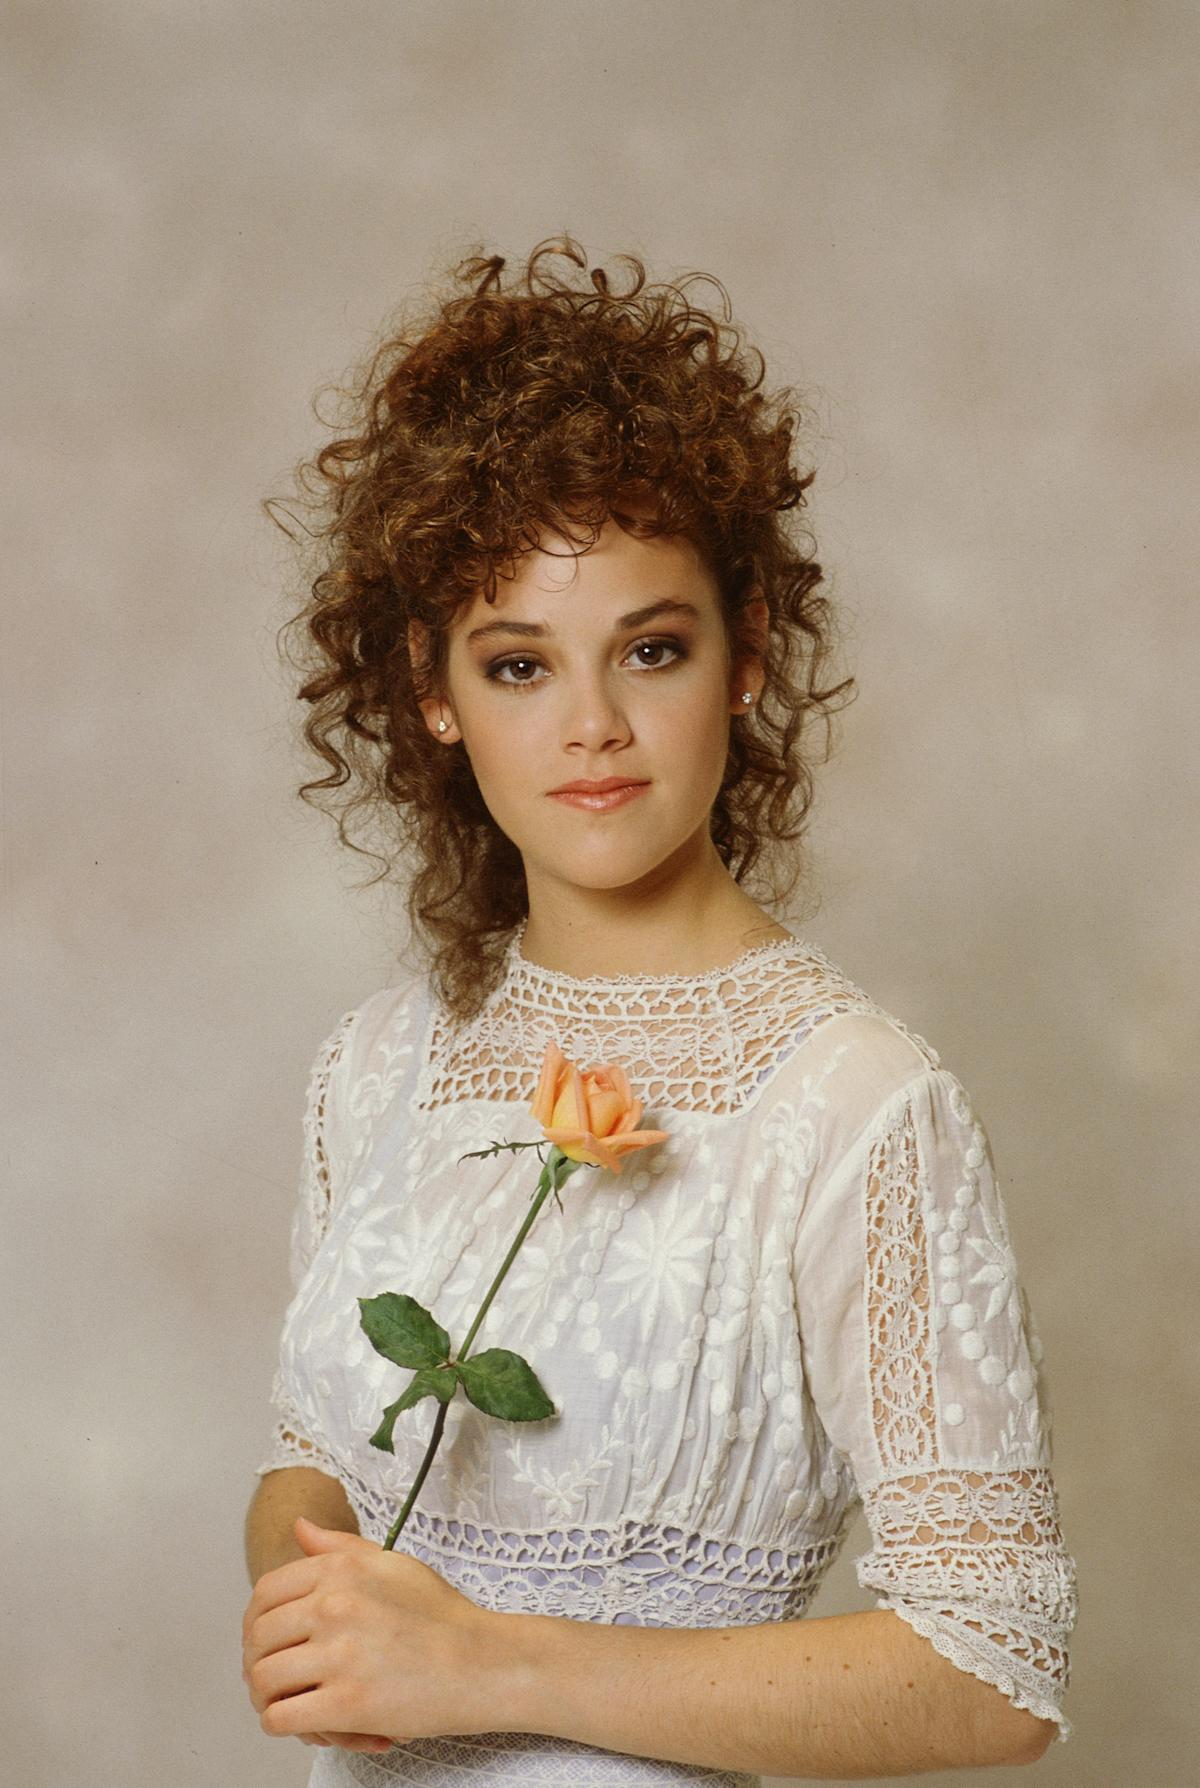 Rebecca Schaeffer, the actress killed by a fan who could star in 'Pretty Woman' before Julia Roberts